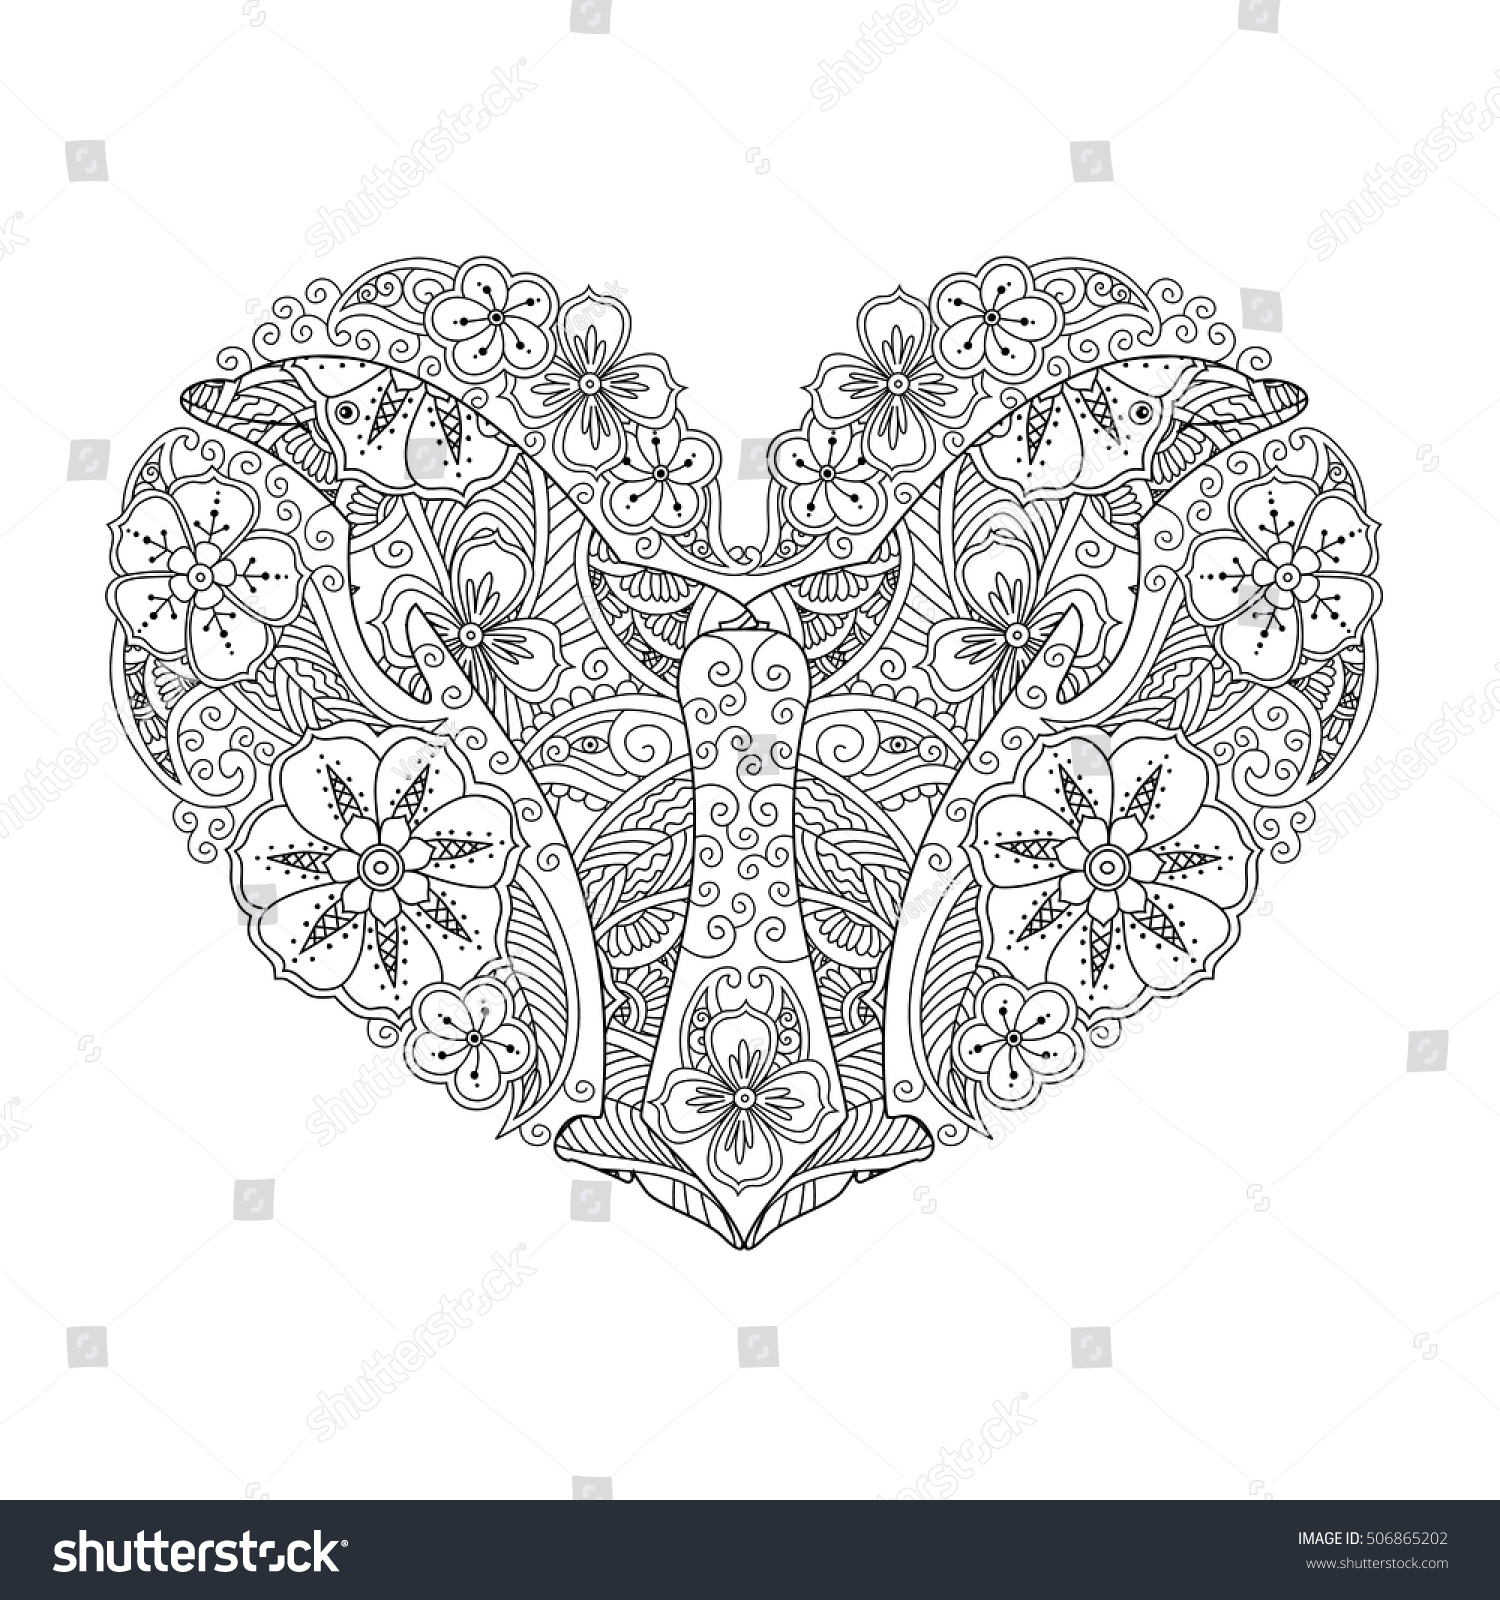 Royalty-free Coloring page with dolphin in heart… #506865202 Stock ...